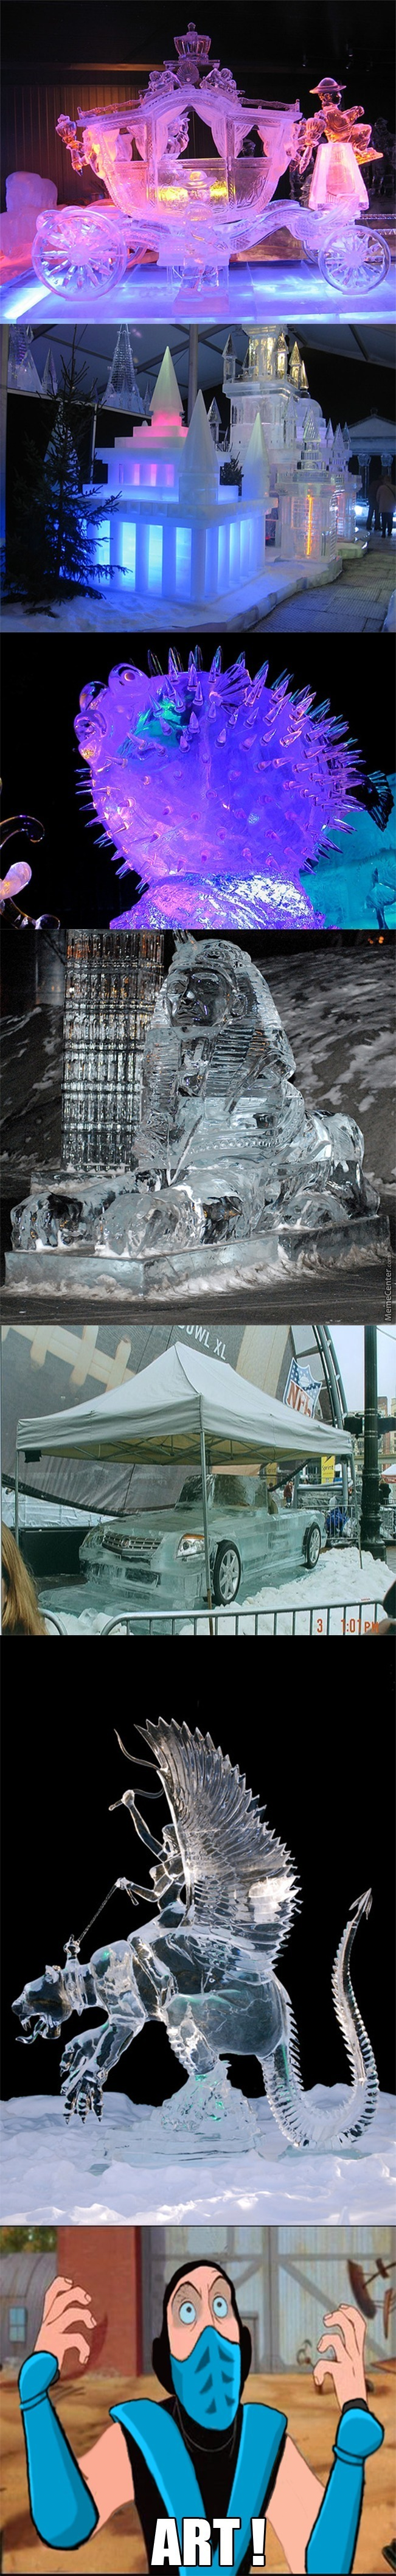 Some Of The Coolest Ice Arts I've Seen